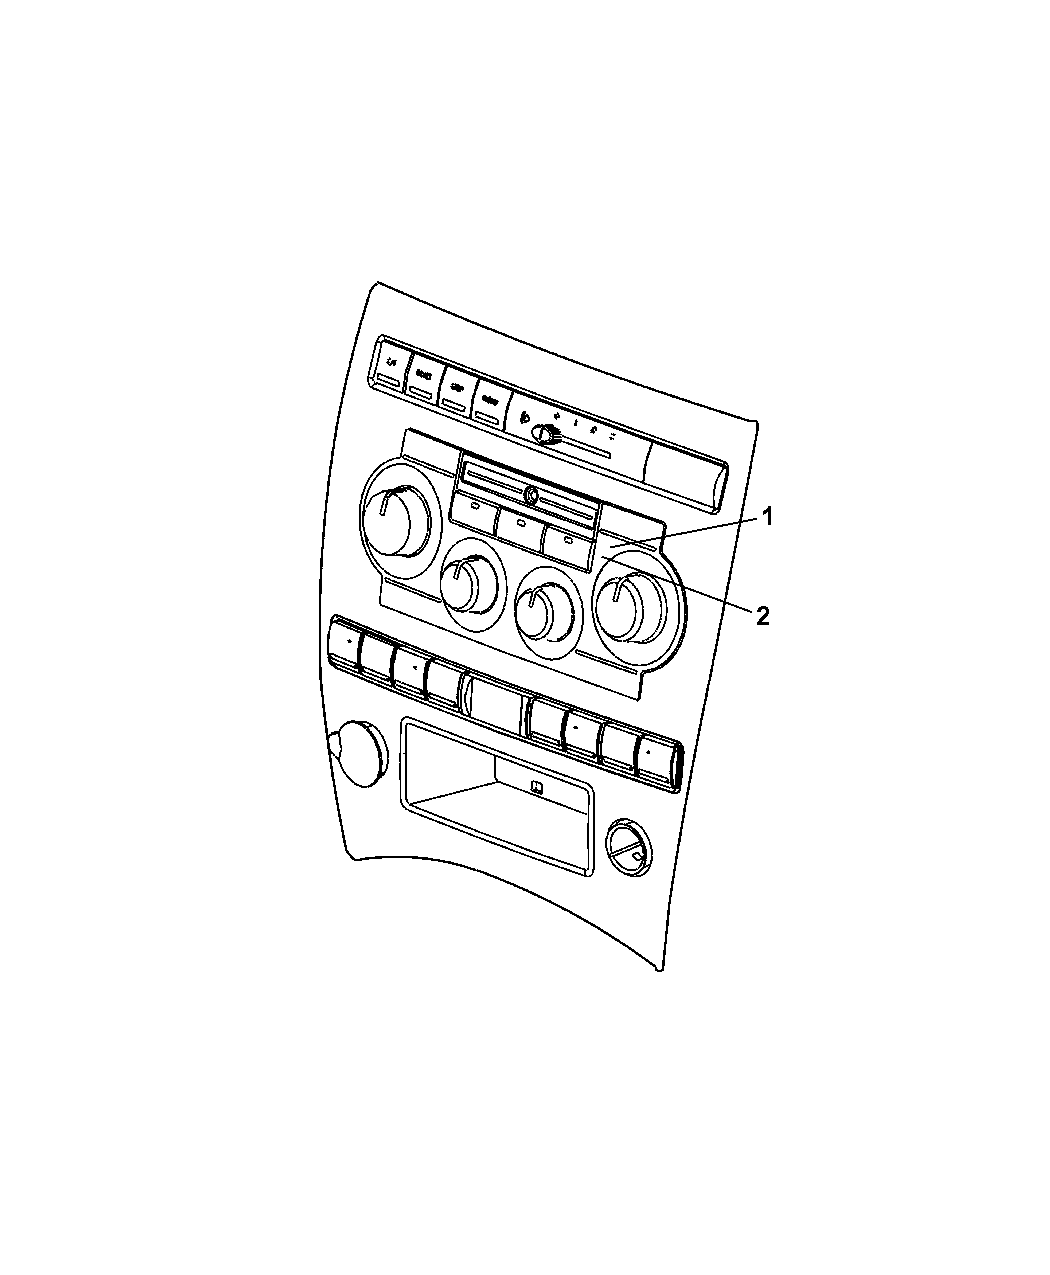 Jeep Commander Control Heater And Air Conditioner